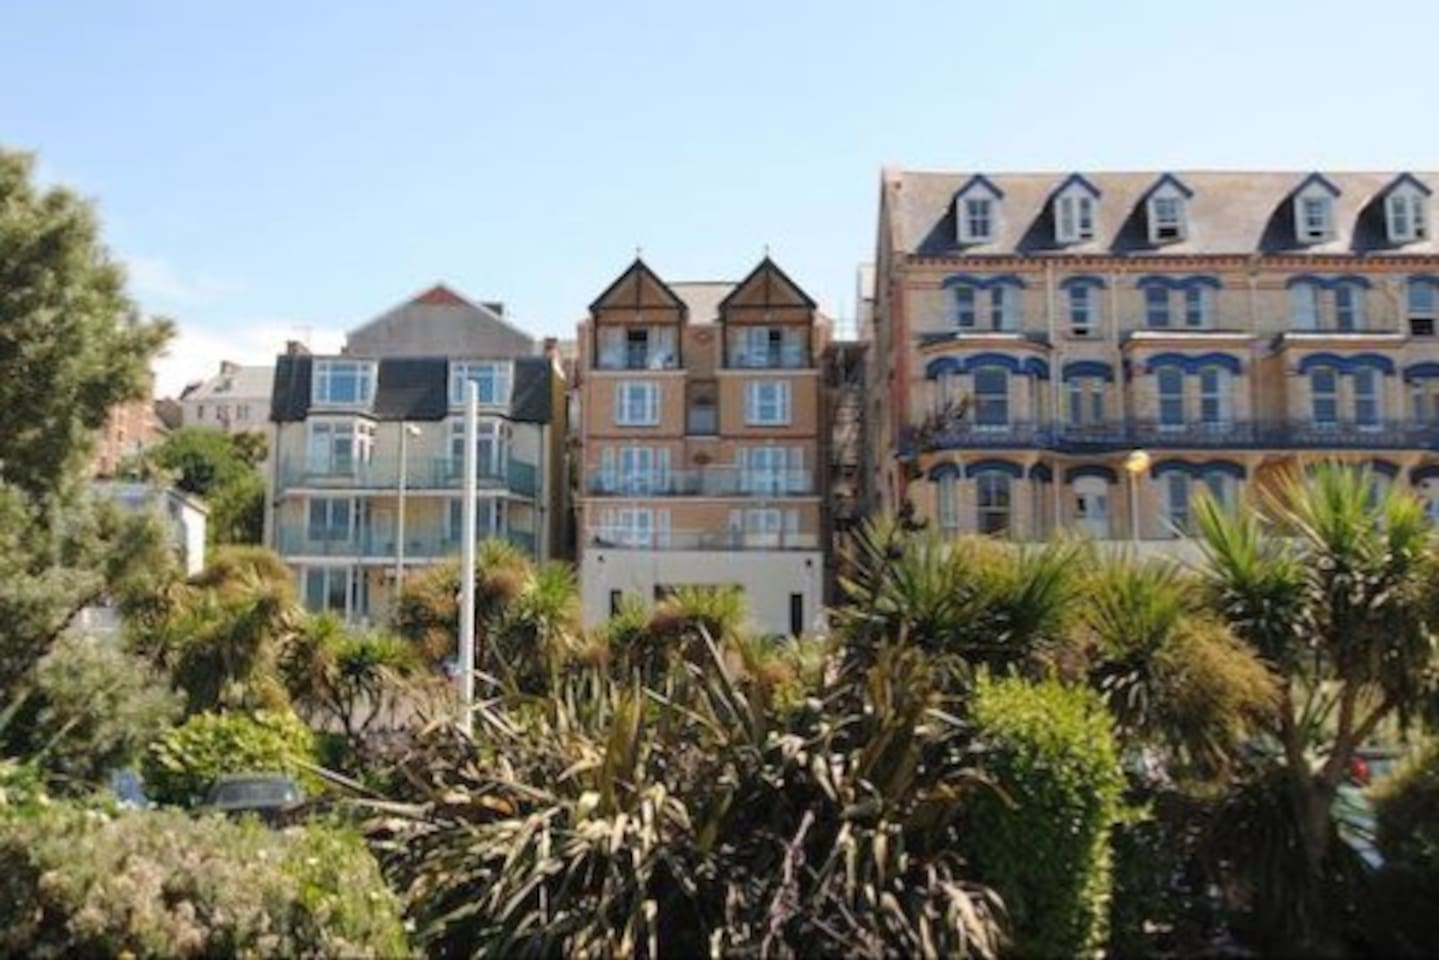 TOP FLOOR PENTHOUSE 4 BEDROOMED APARTMENT, SEA FRONT LOCATION , CLOSE TO ALL AMENITIES.